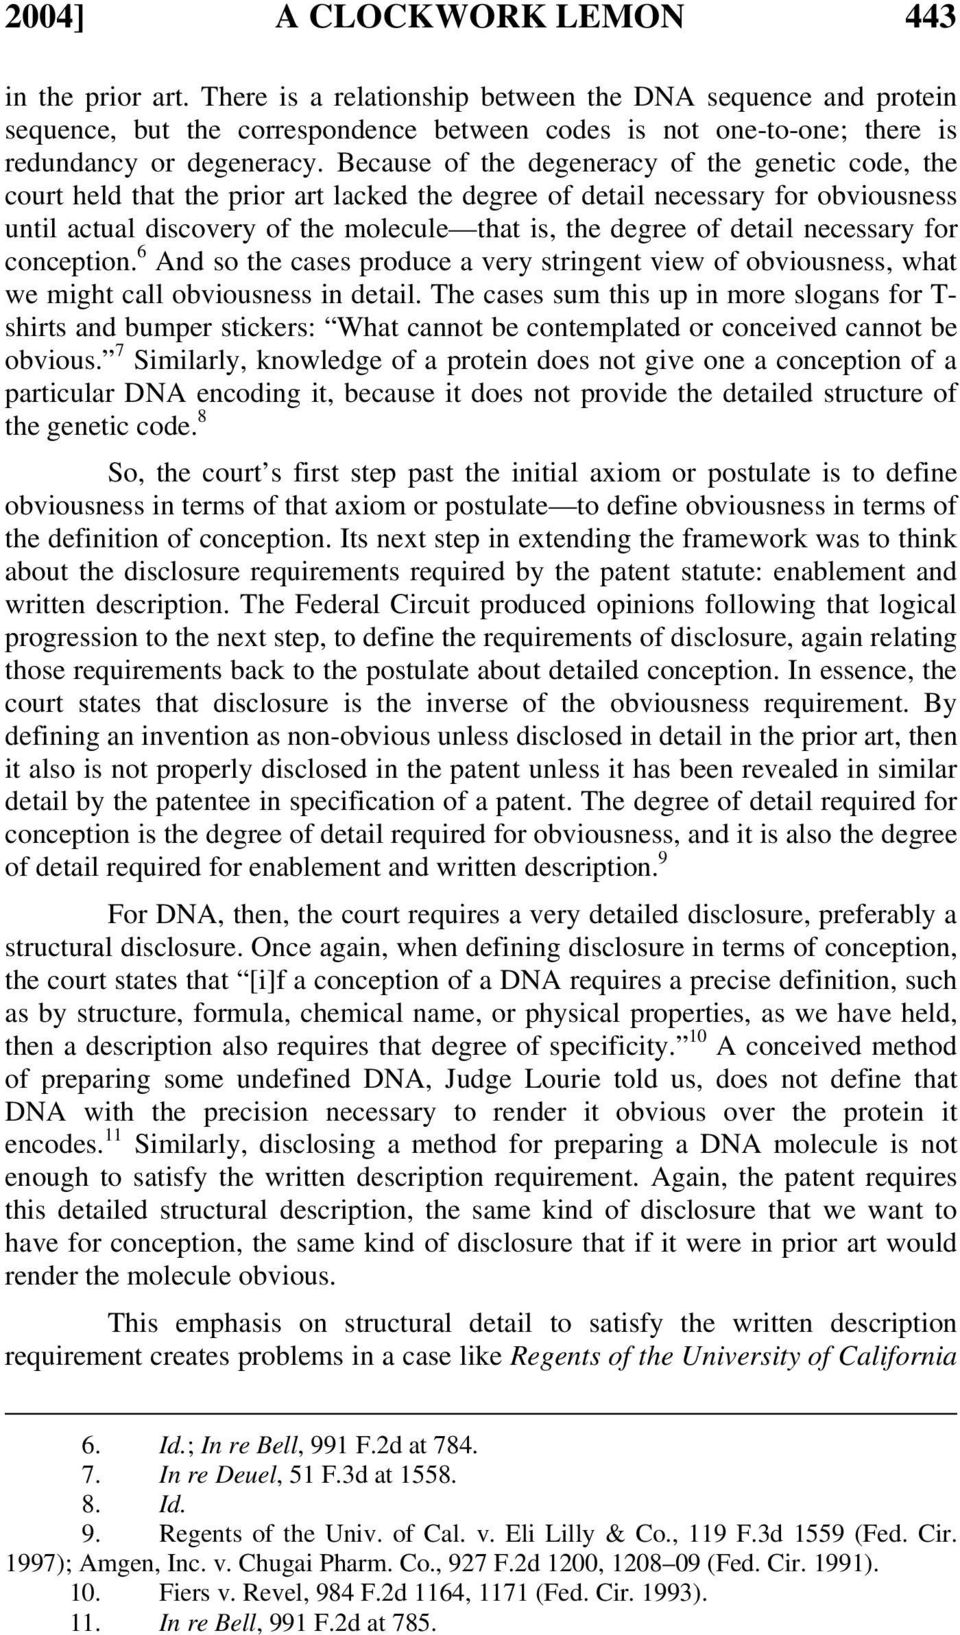 Because of the degeneracy of the genetic code, the court held that the prior art lacked the degree of detail necessary for obviousness until actual discovery of the molecule that is, the degree of